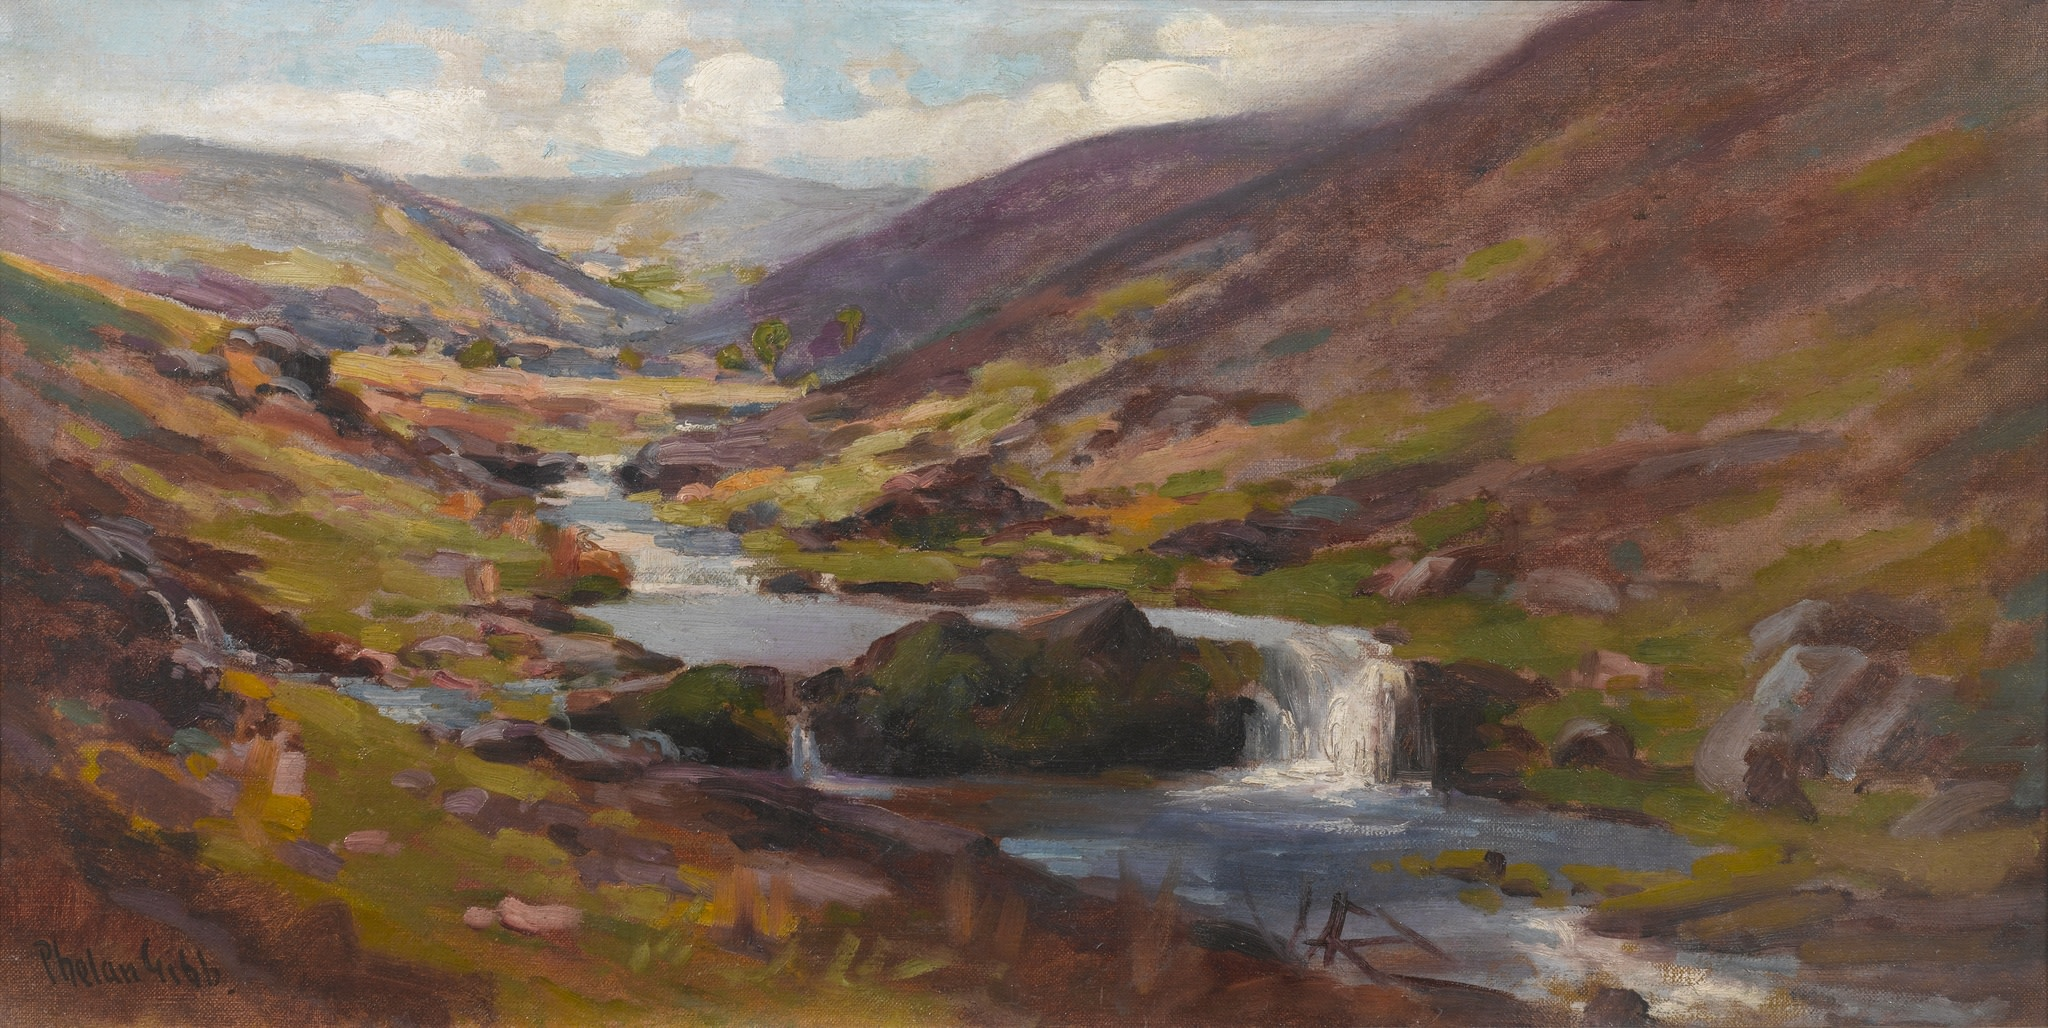 "<span class=""link fancybox-details-link""><a href=""/artists/27-harry-phelan-gibb/works/10/"">View Detail Page</a></span><div class=""artist""><strong>Harry Phelan Gibb</strong></div> 1870 - 1948 <div class=""title""><em>Chalk Stream nr Brendon</em>, c.1918</div> <div class=""signed_and_dated"">signed lower left</div> <div class=""medium"">Oil on Canvas</div> <div class=""dimensions"">11 1/2 x 18 3/4 in<br />29.5 x 47.5 cm</div>"